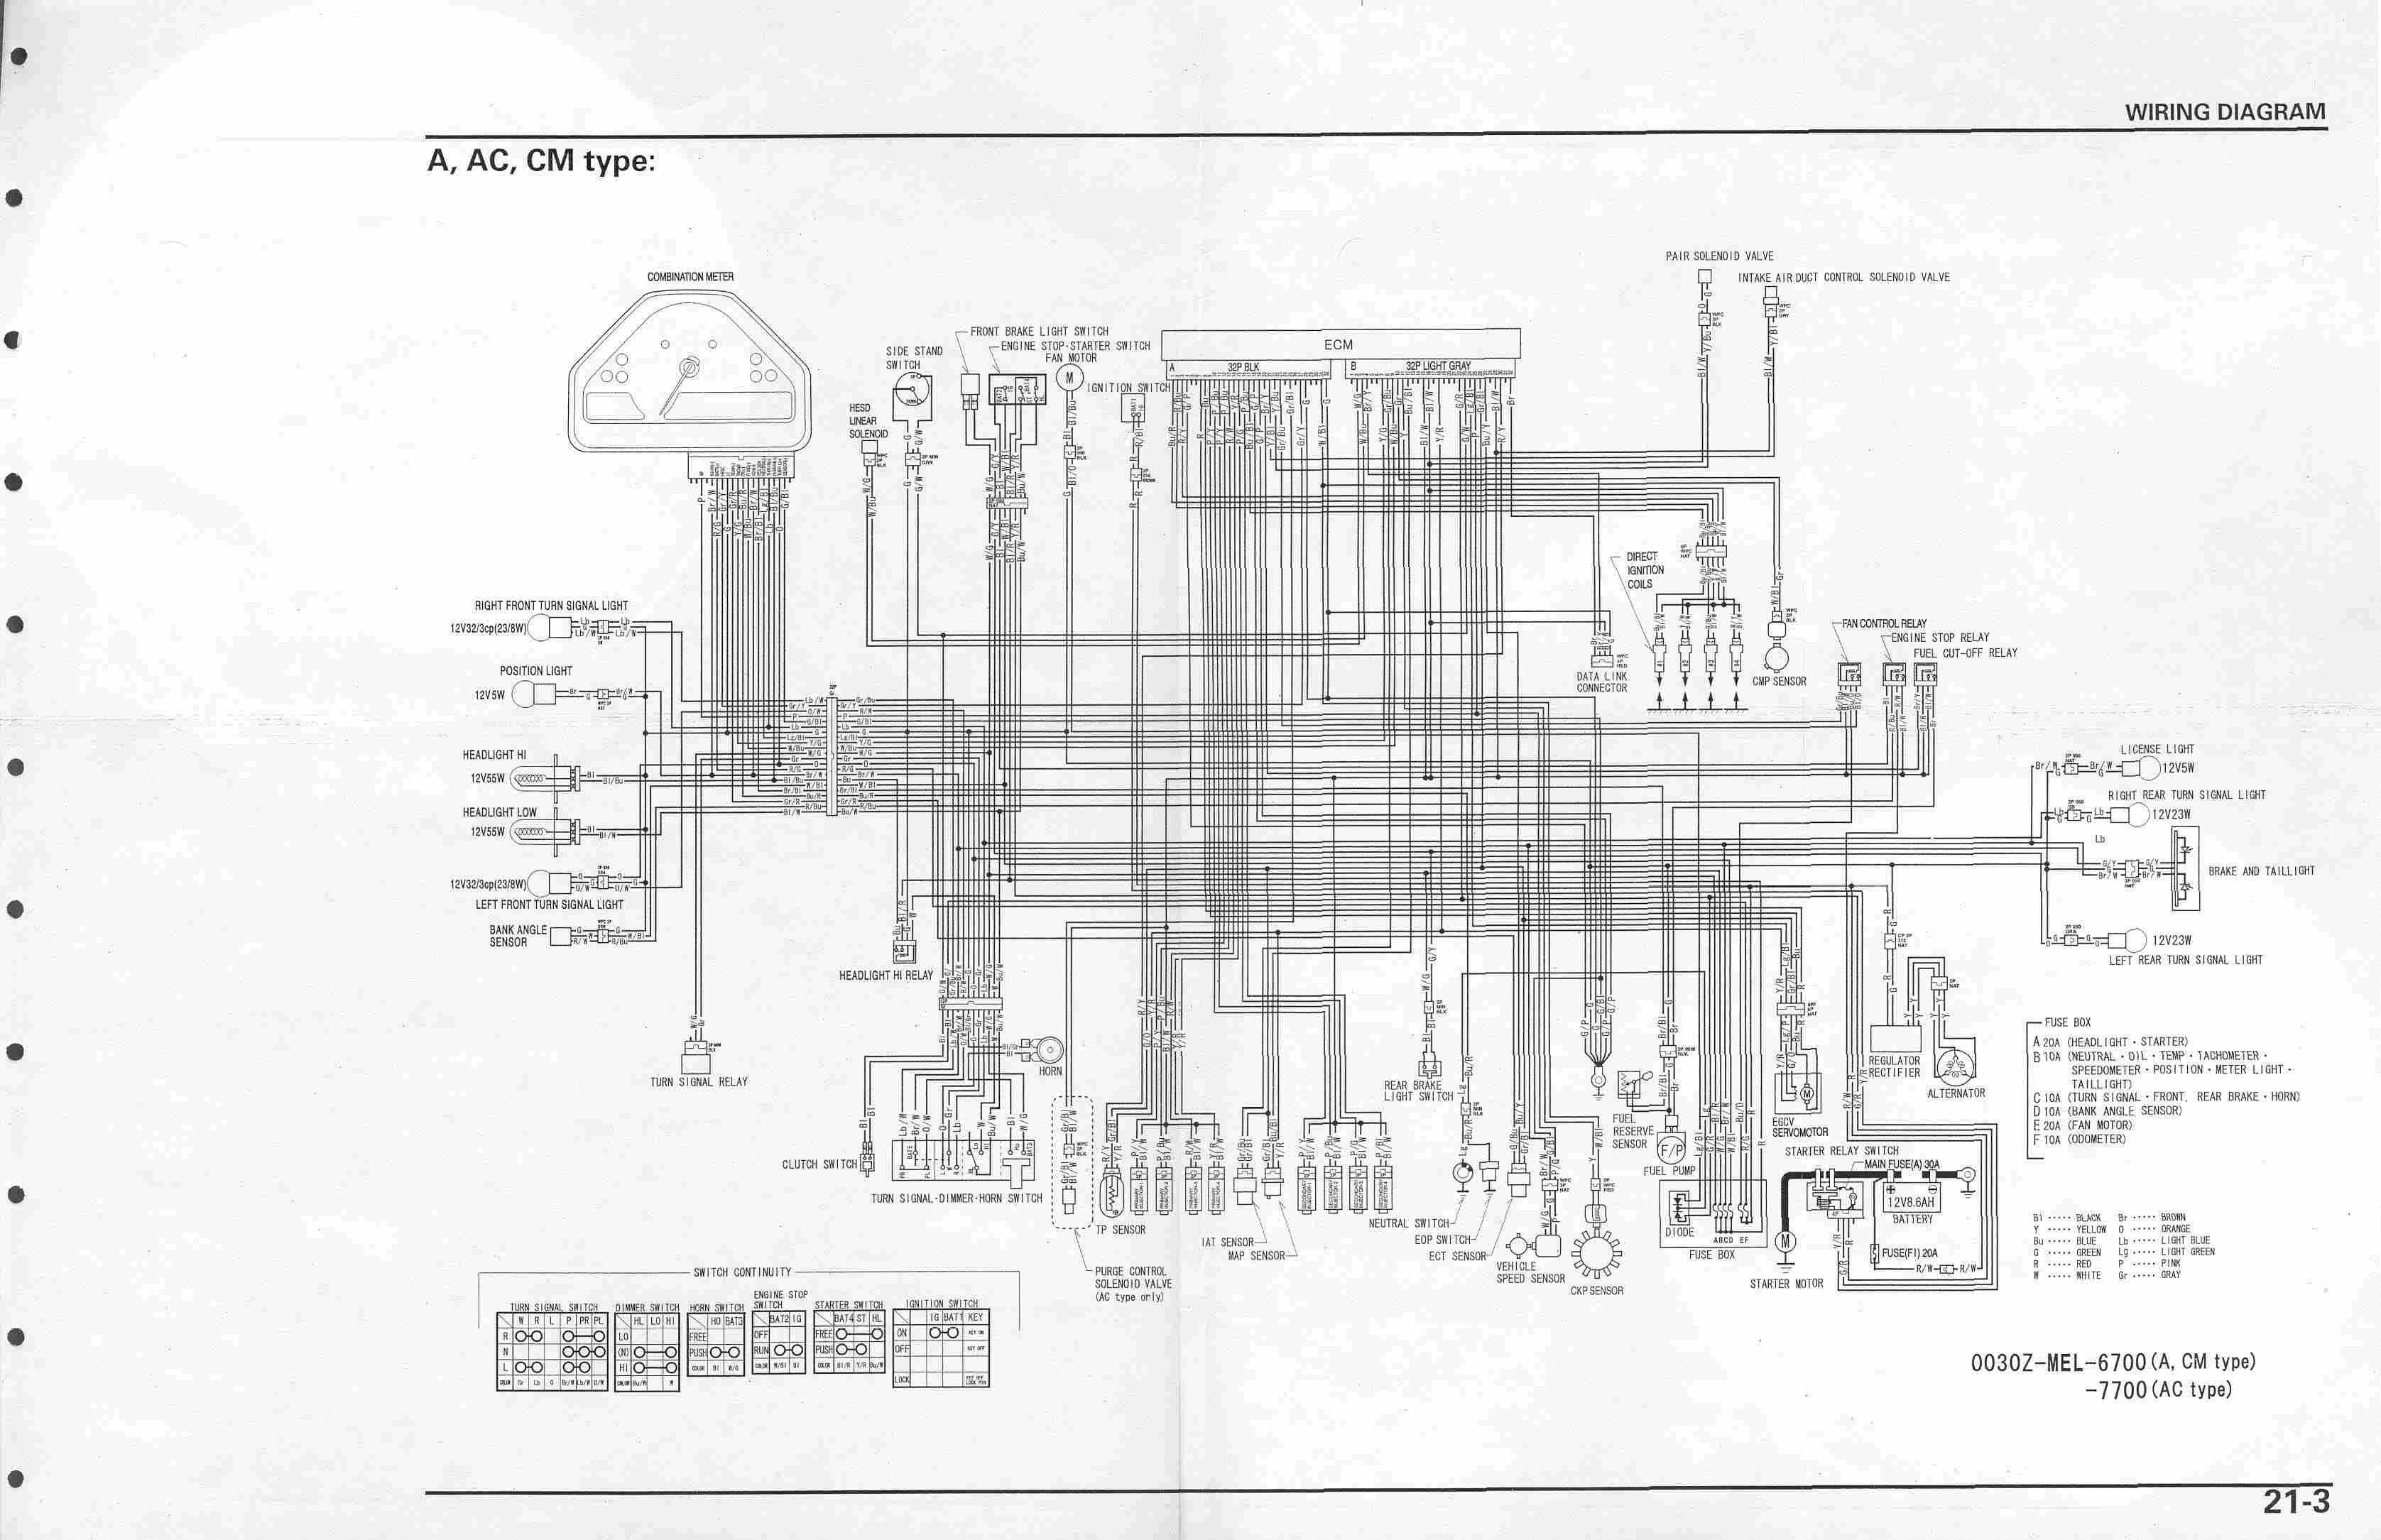 [DIAGRAM_3US]  Cbr 1000rr Wiring Diagram - 1967 Mustang Wiper Motor Wiring Diagram for Wiring  Diagram Schematics | Honda Cbr 1000 Wiring Diagram |  | Wiring Diagram Schematics